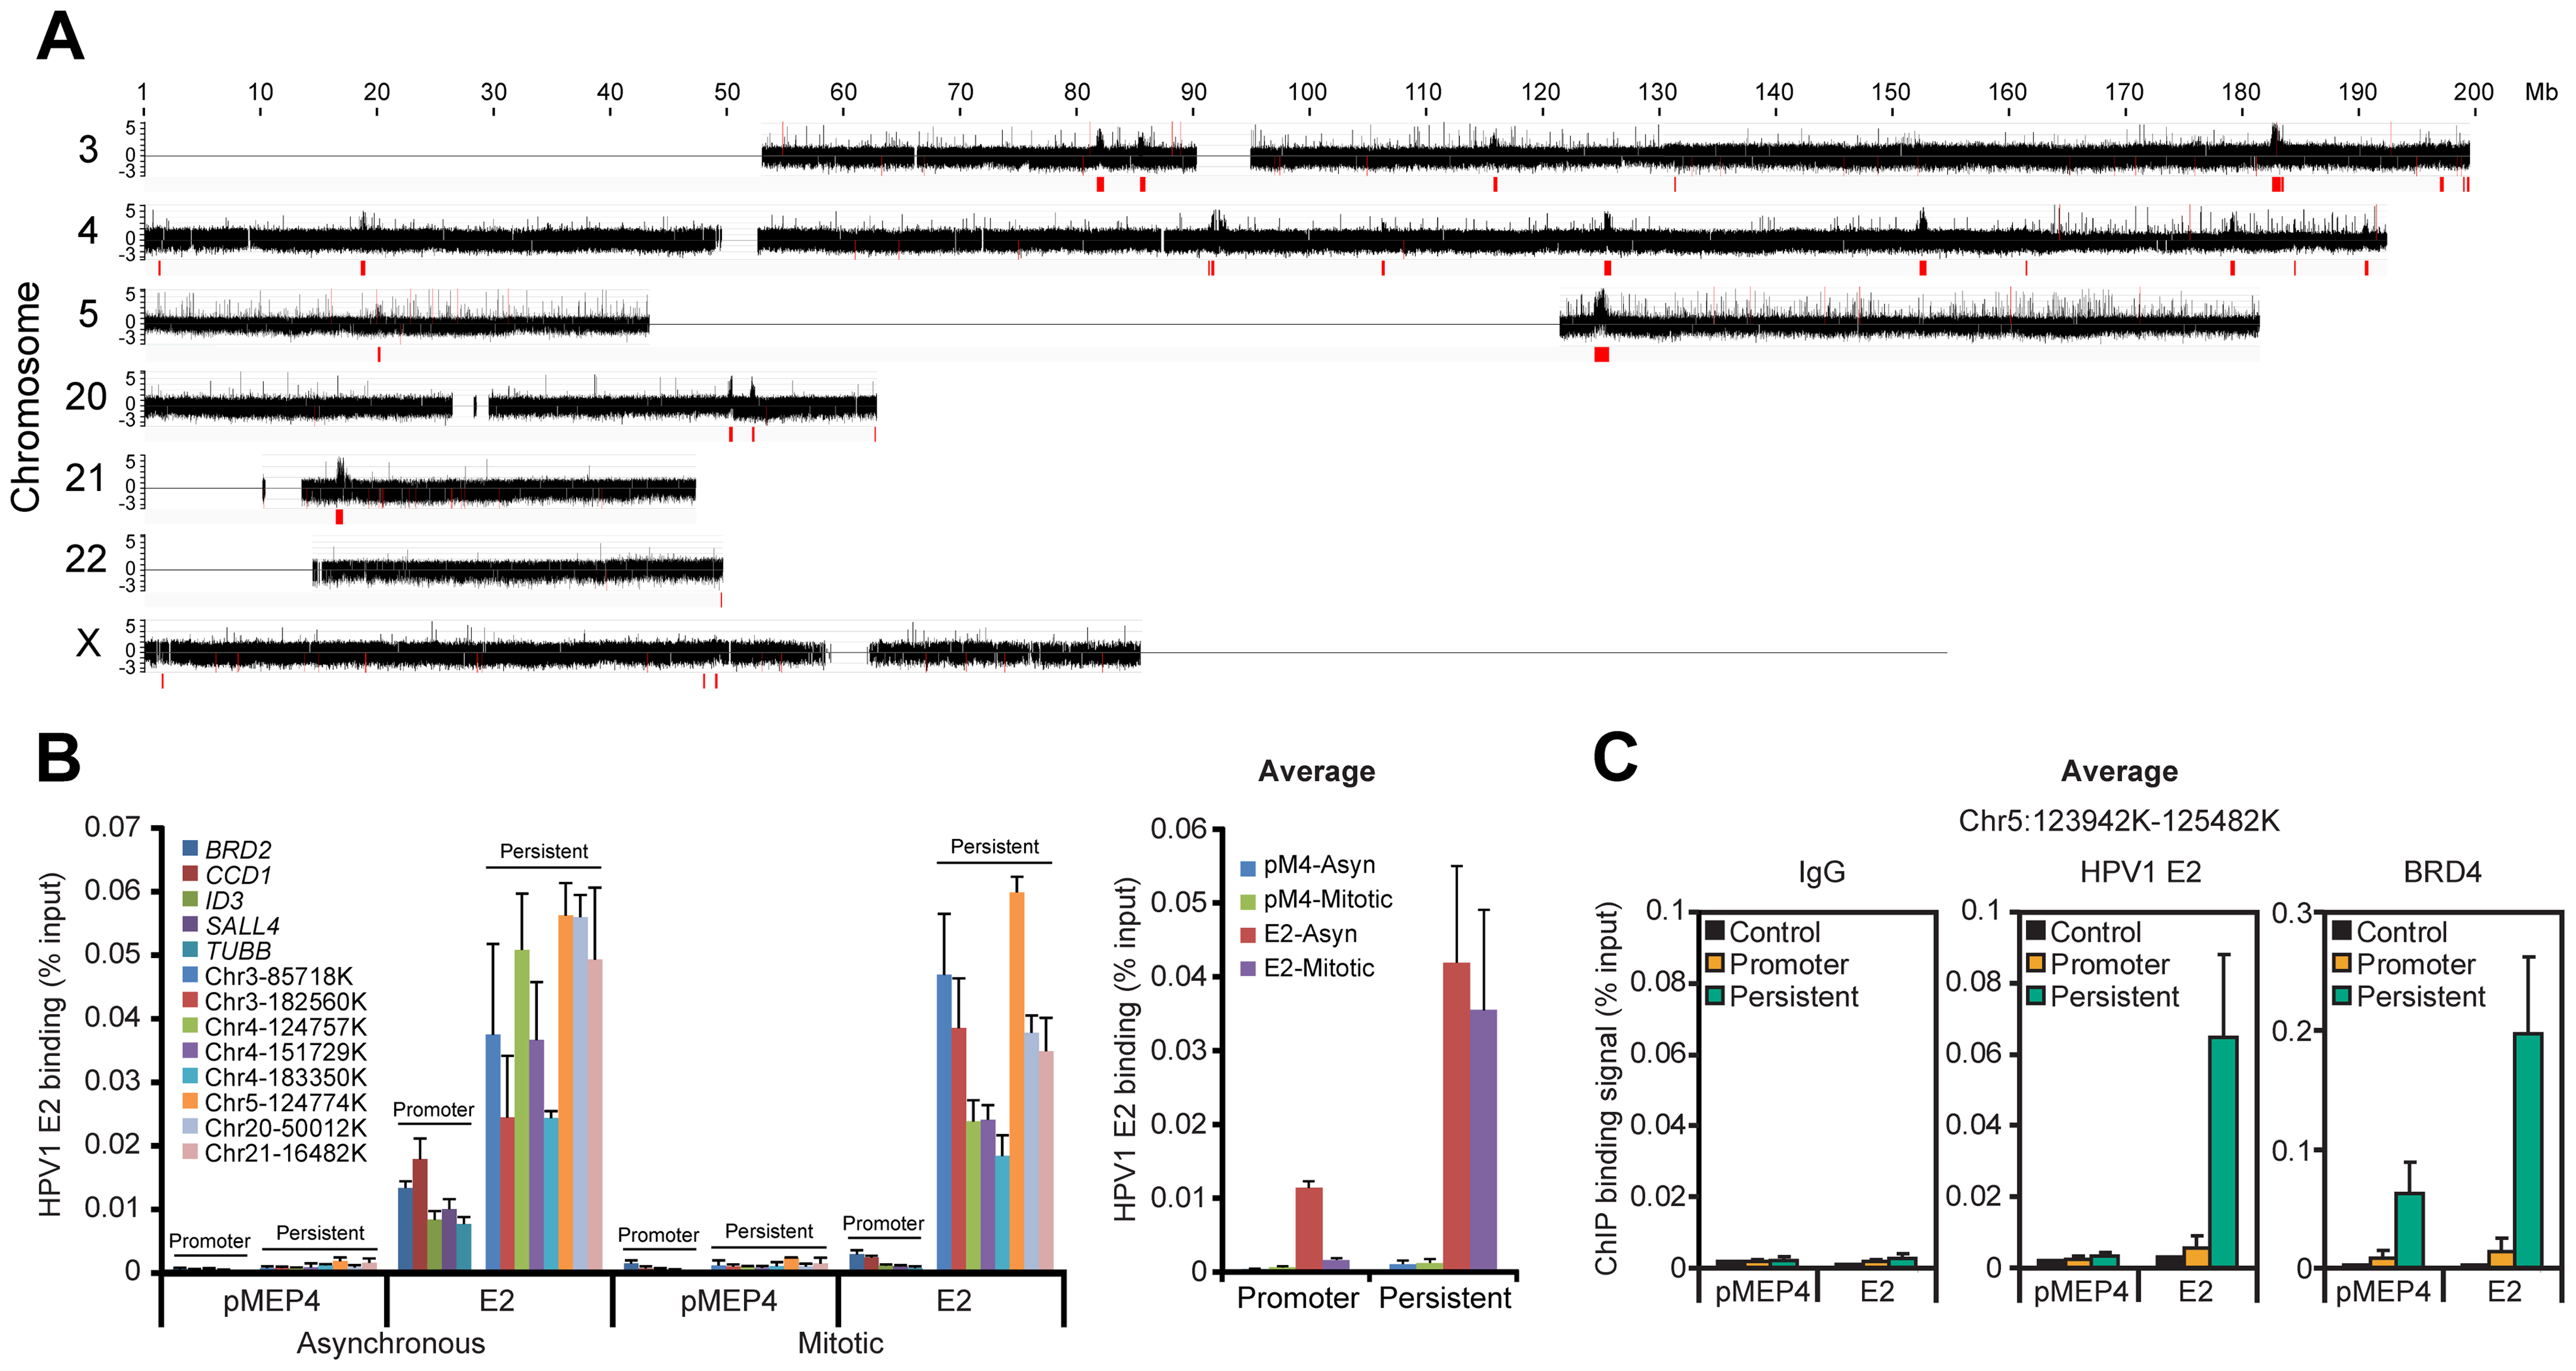 HPV1 E2 binds to broad regions of mitotic chromatin.